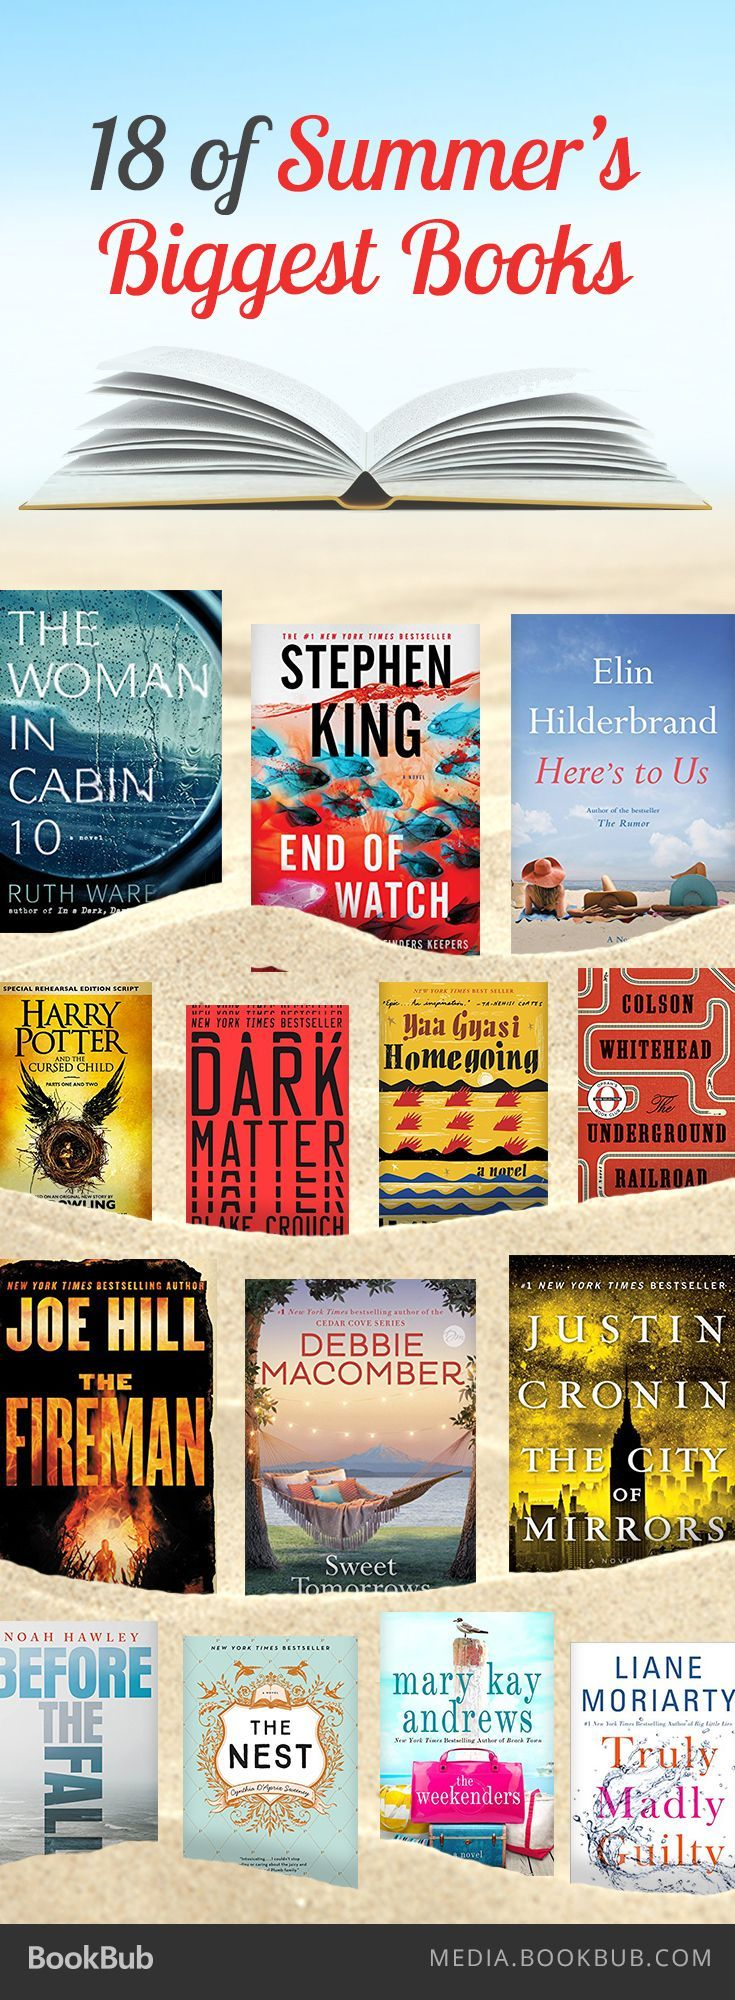 18 of this summer 2016's biggest books, including The Woman in Cabin 10 by Ruth…